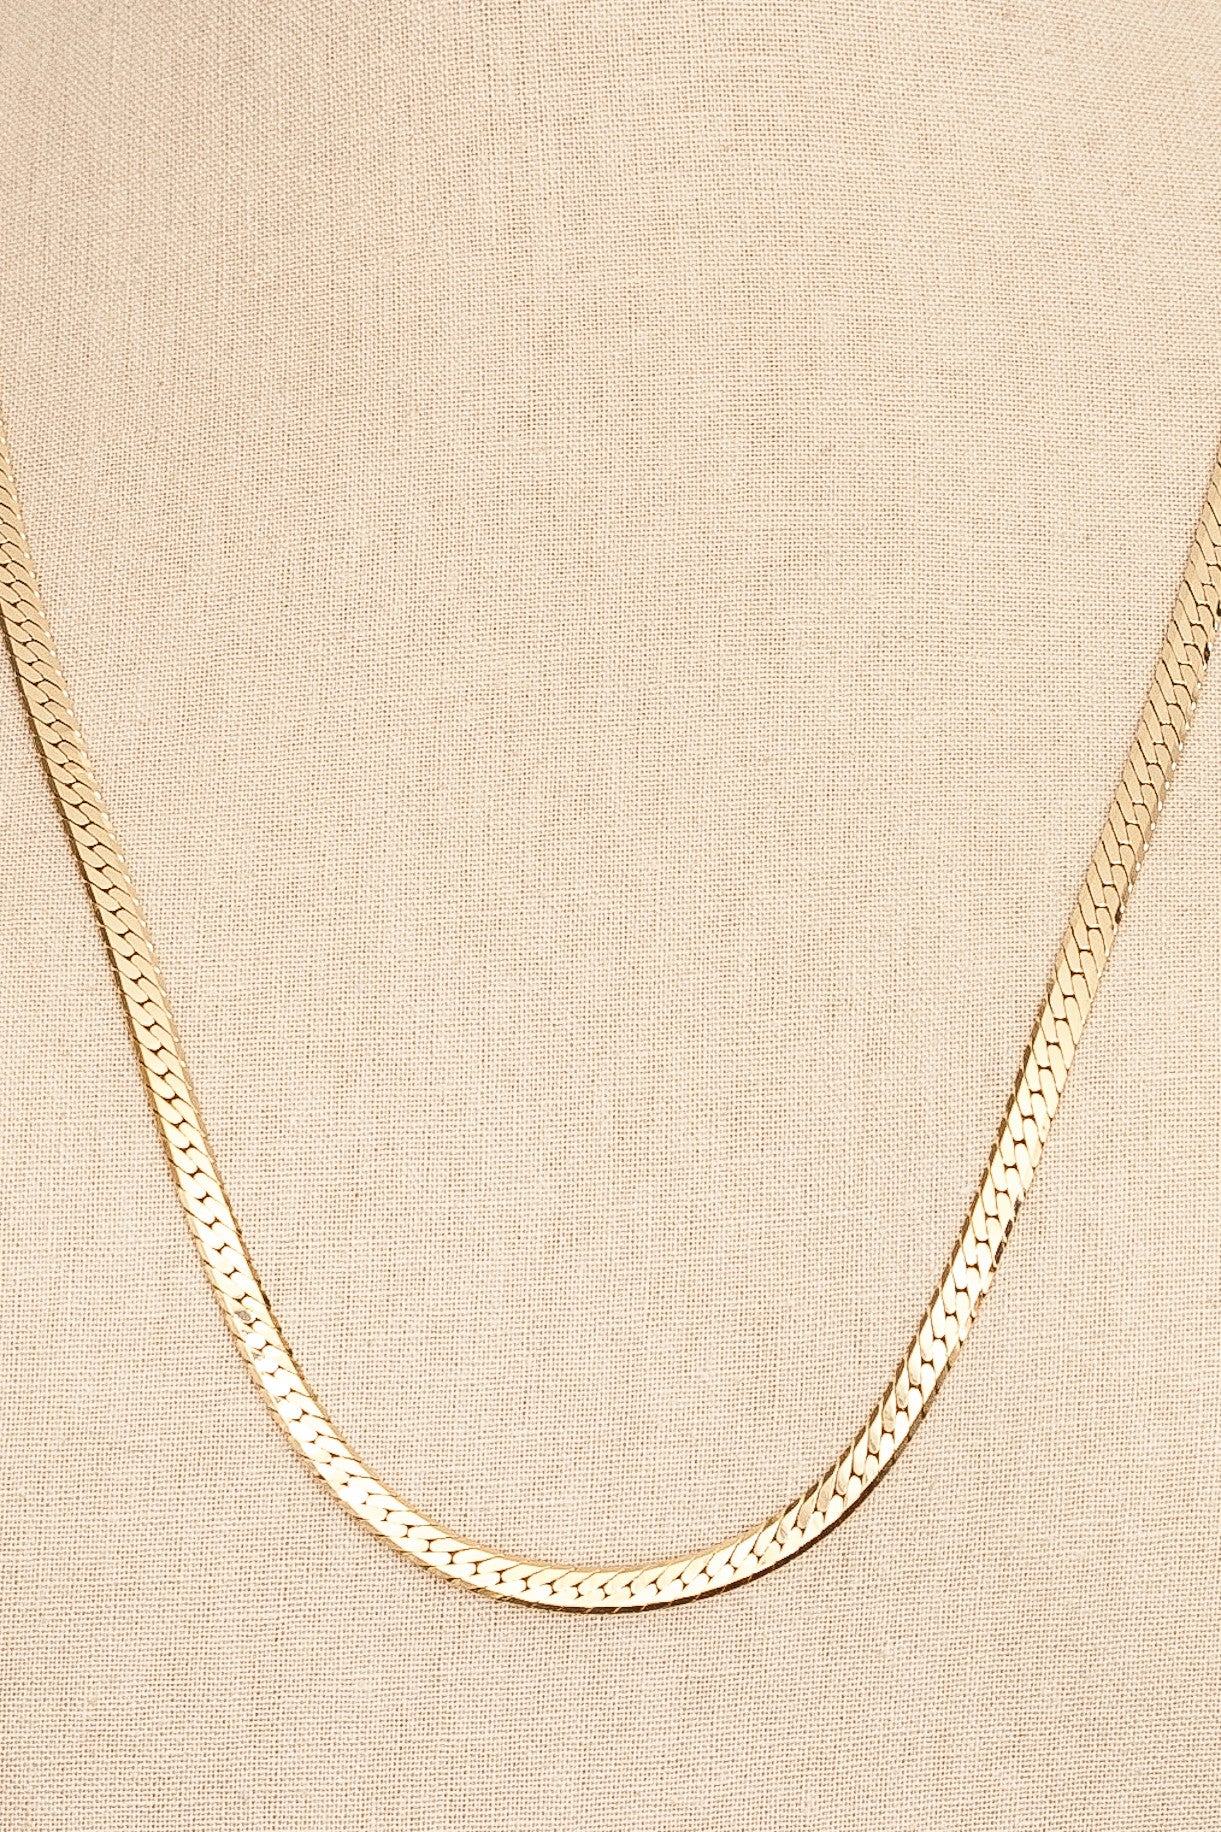 70's__Napier__Flat Layering Necklace